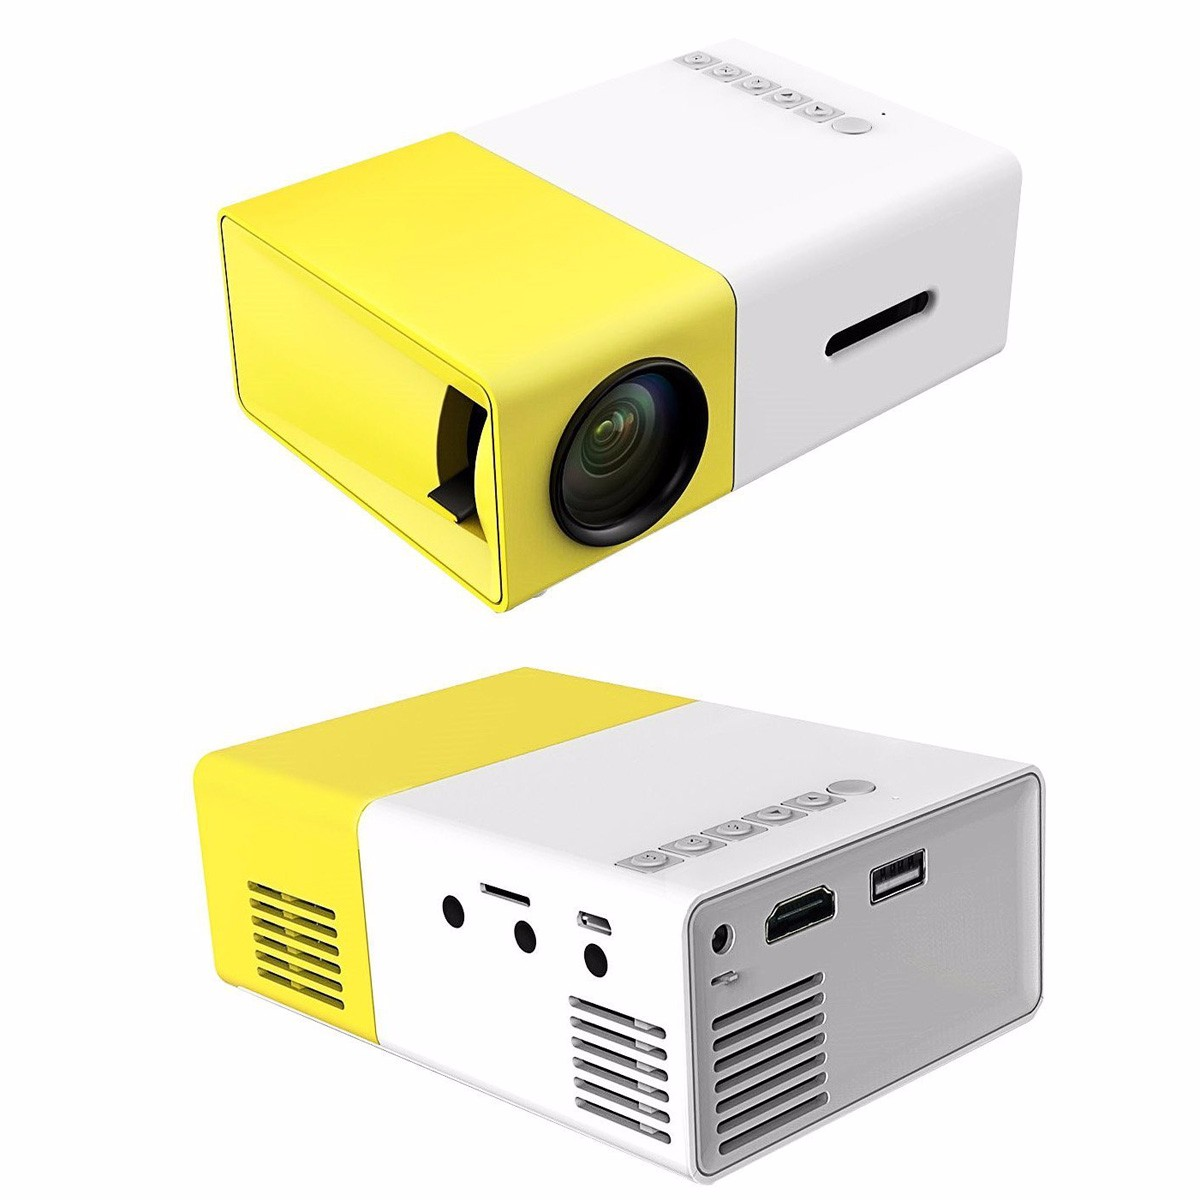 New yg300 1080p led portable projector 400 600lm for Latest pocket projector